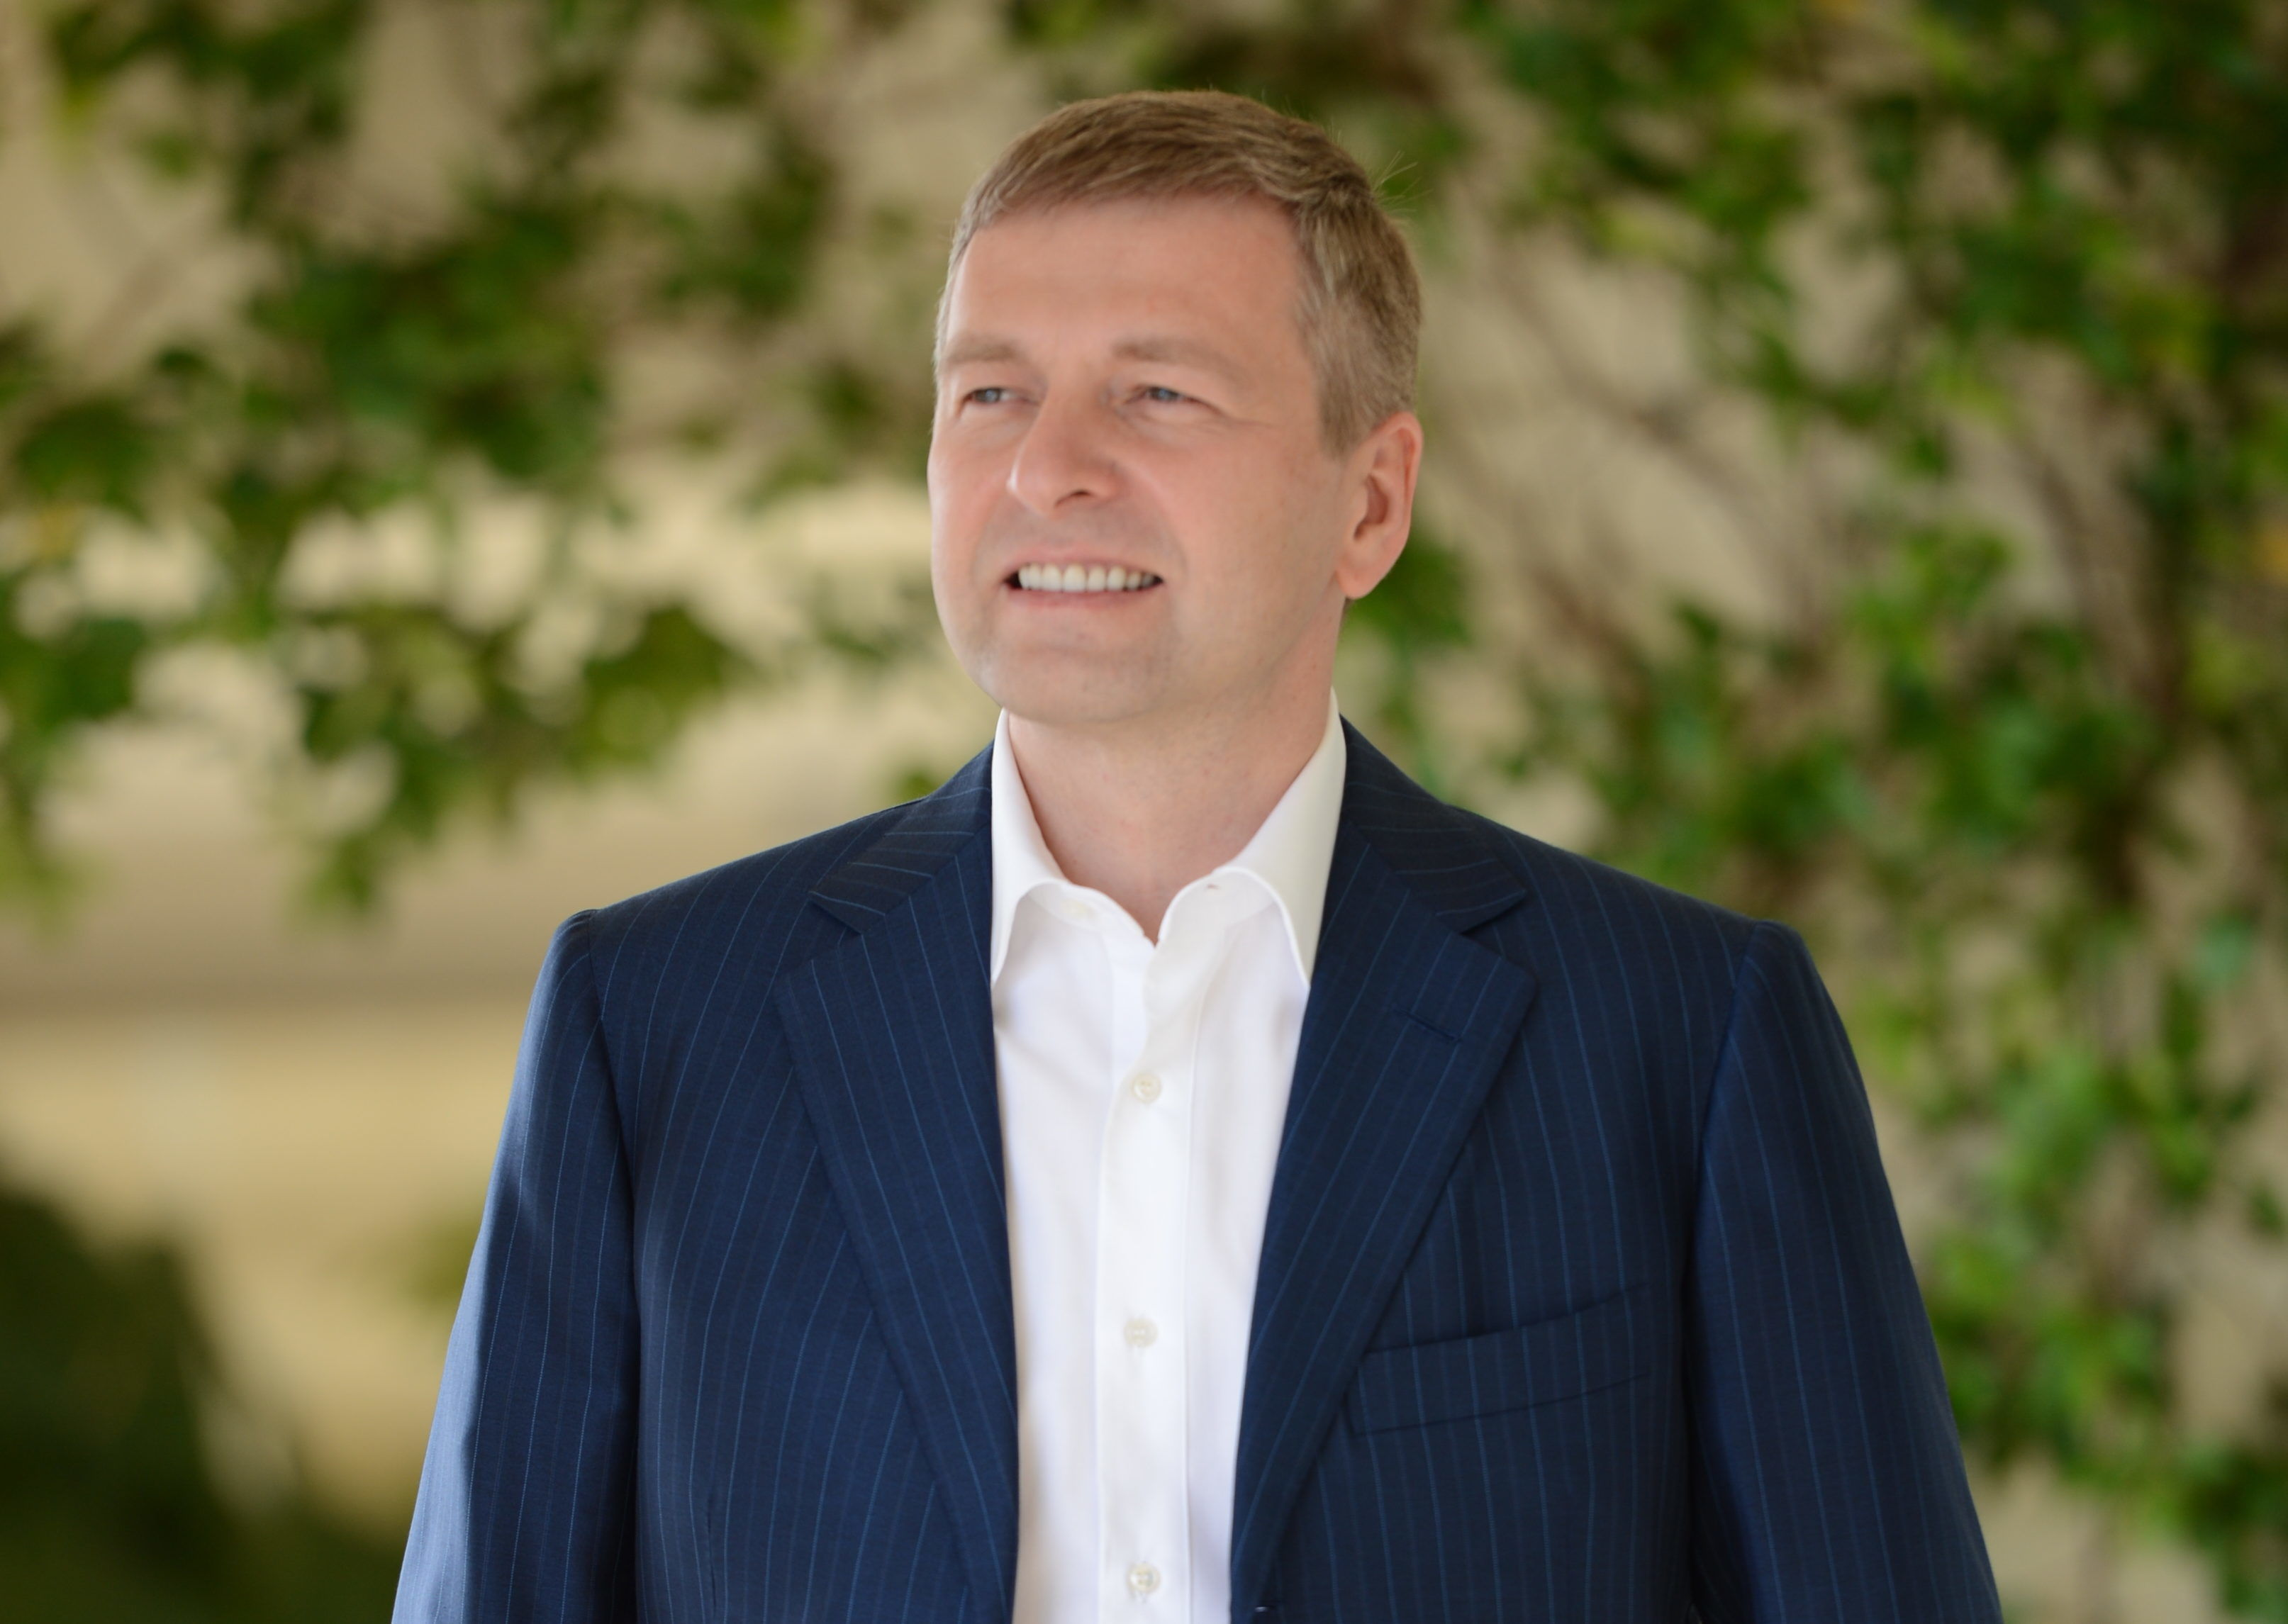 Dmitry Rybolovlev Photo: Francknataf